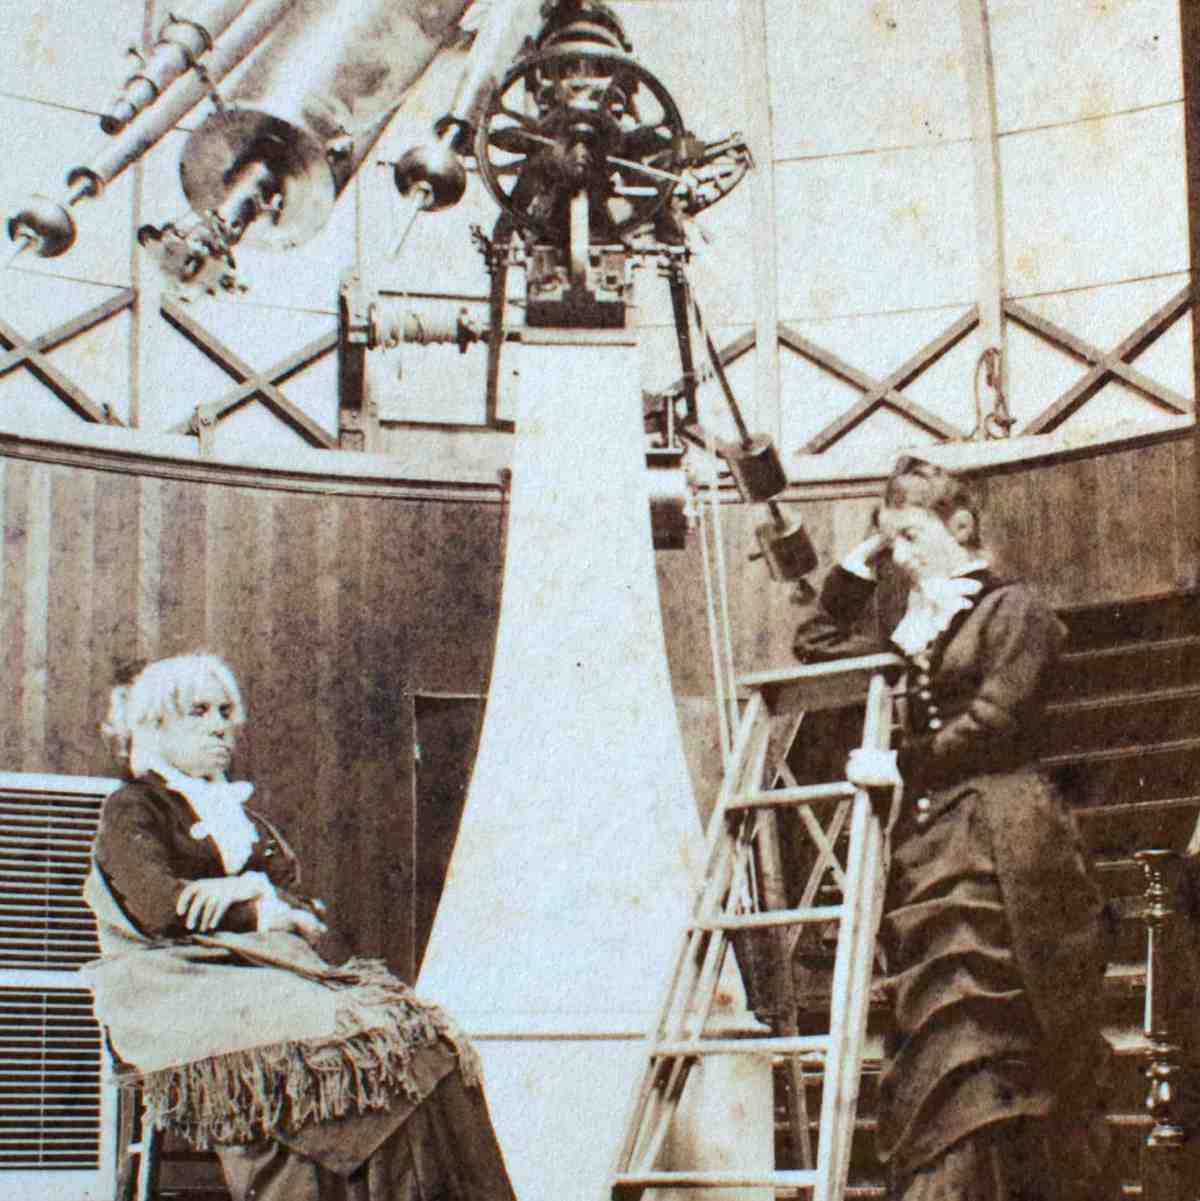 MITCHELL & WHITNEY ASTRONOMERS